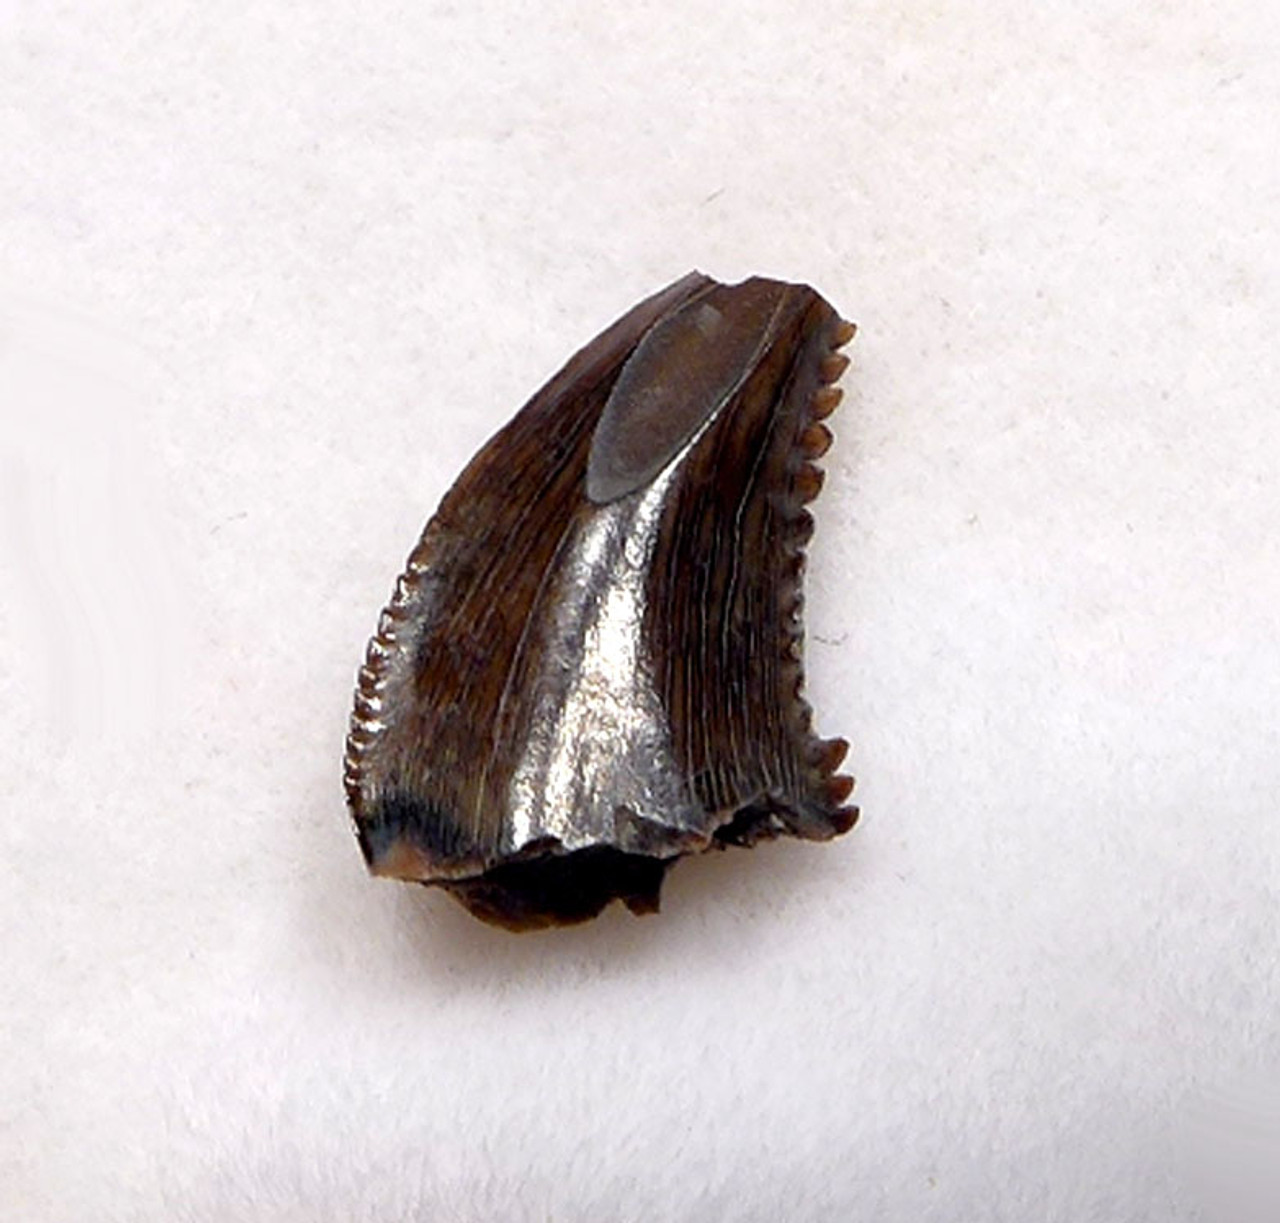 RARE TROODON FOSSIL TOOTH FROM A DROMAEOSAUR-LIKE DINOSAUR *DT6-327